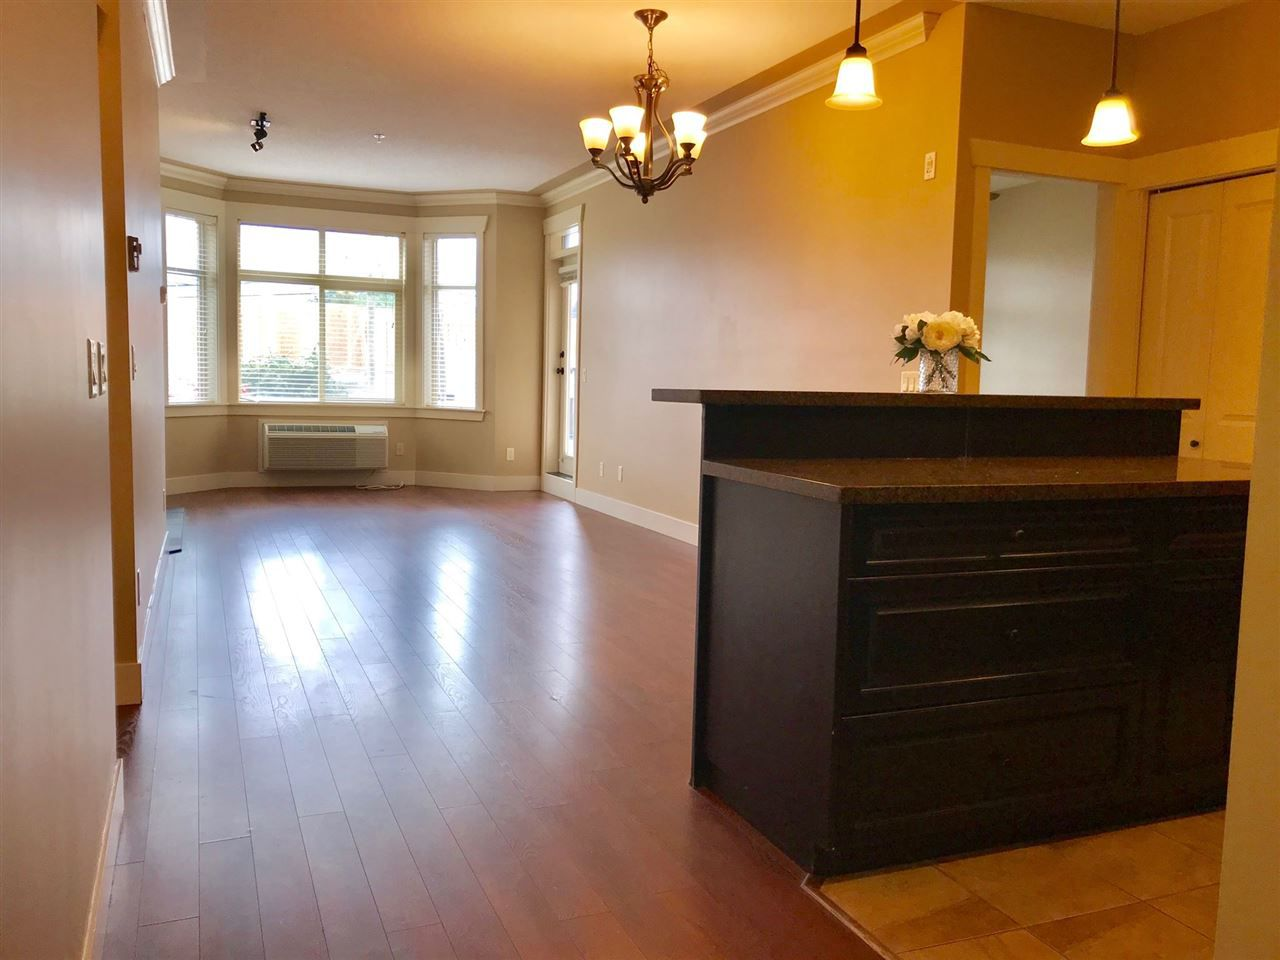 Photo 2: Photos: 110 45893 CHESTERFIELD Avenue in Chilliwack: Chilliwack W Young-Well Condo for sale : MLS®# R2358938